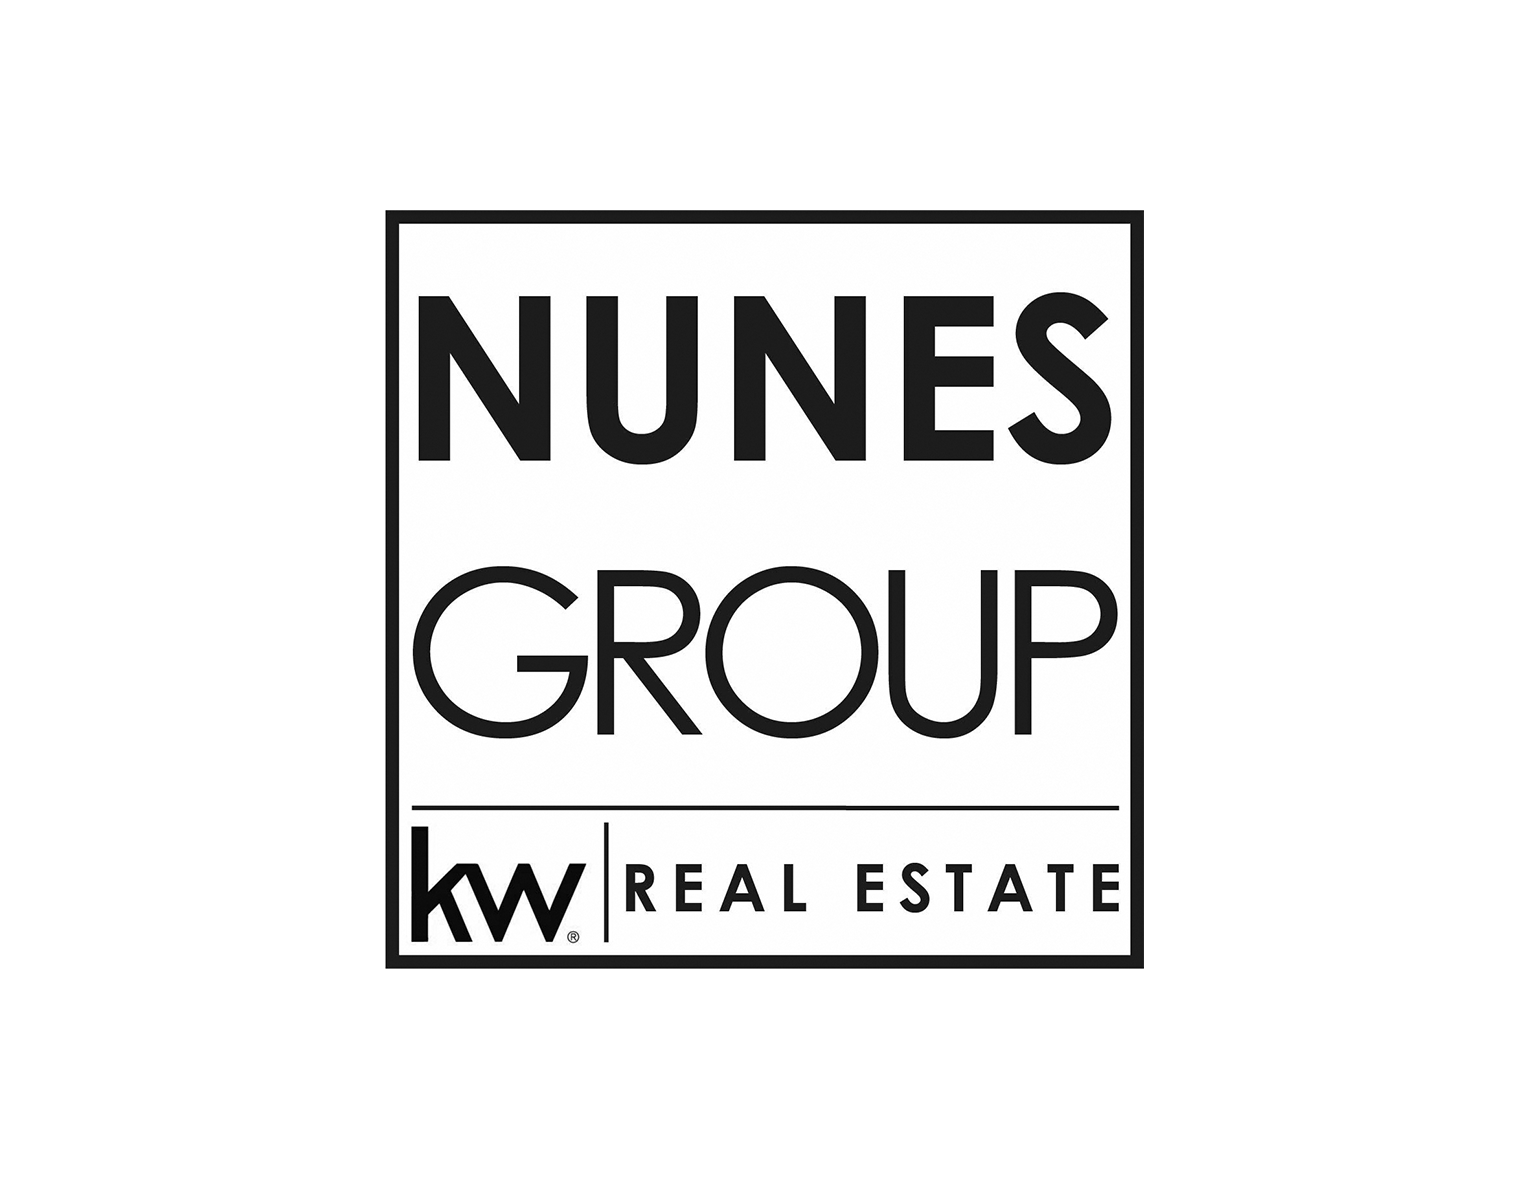 nunes_group